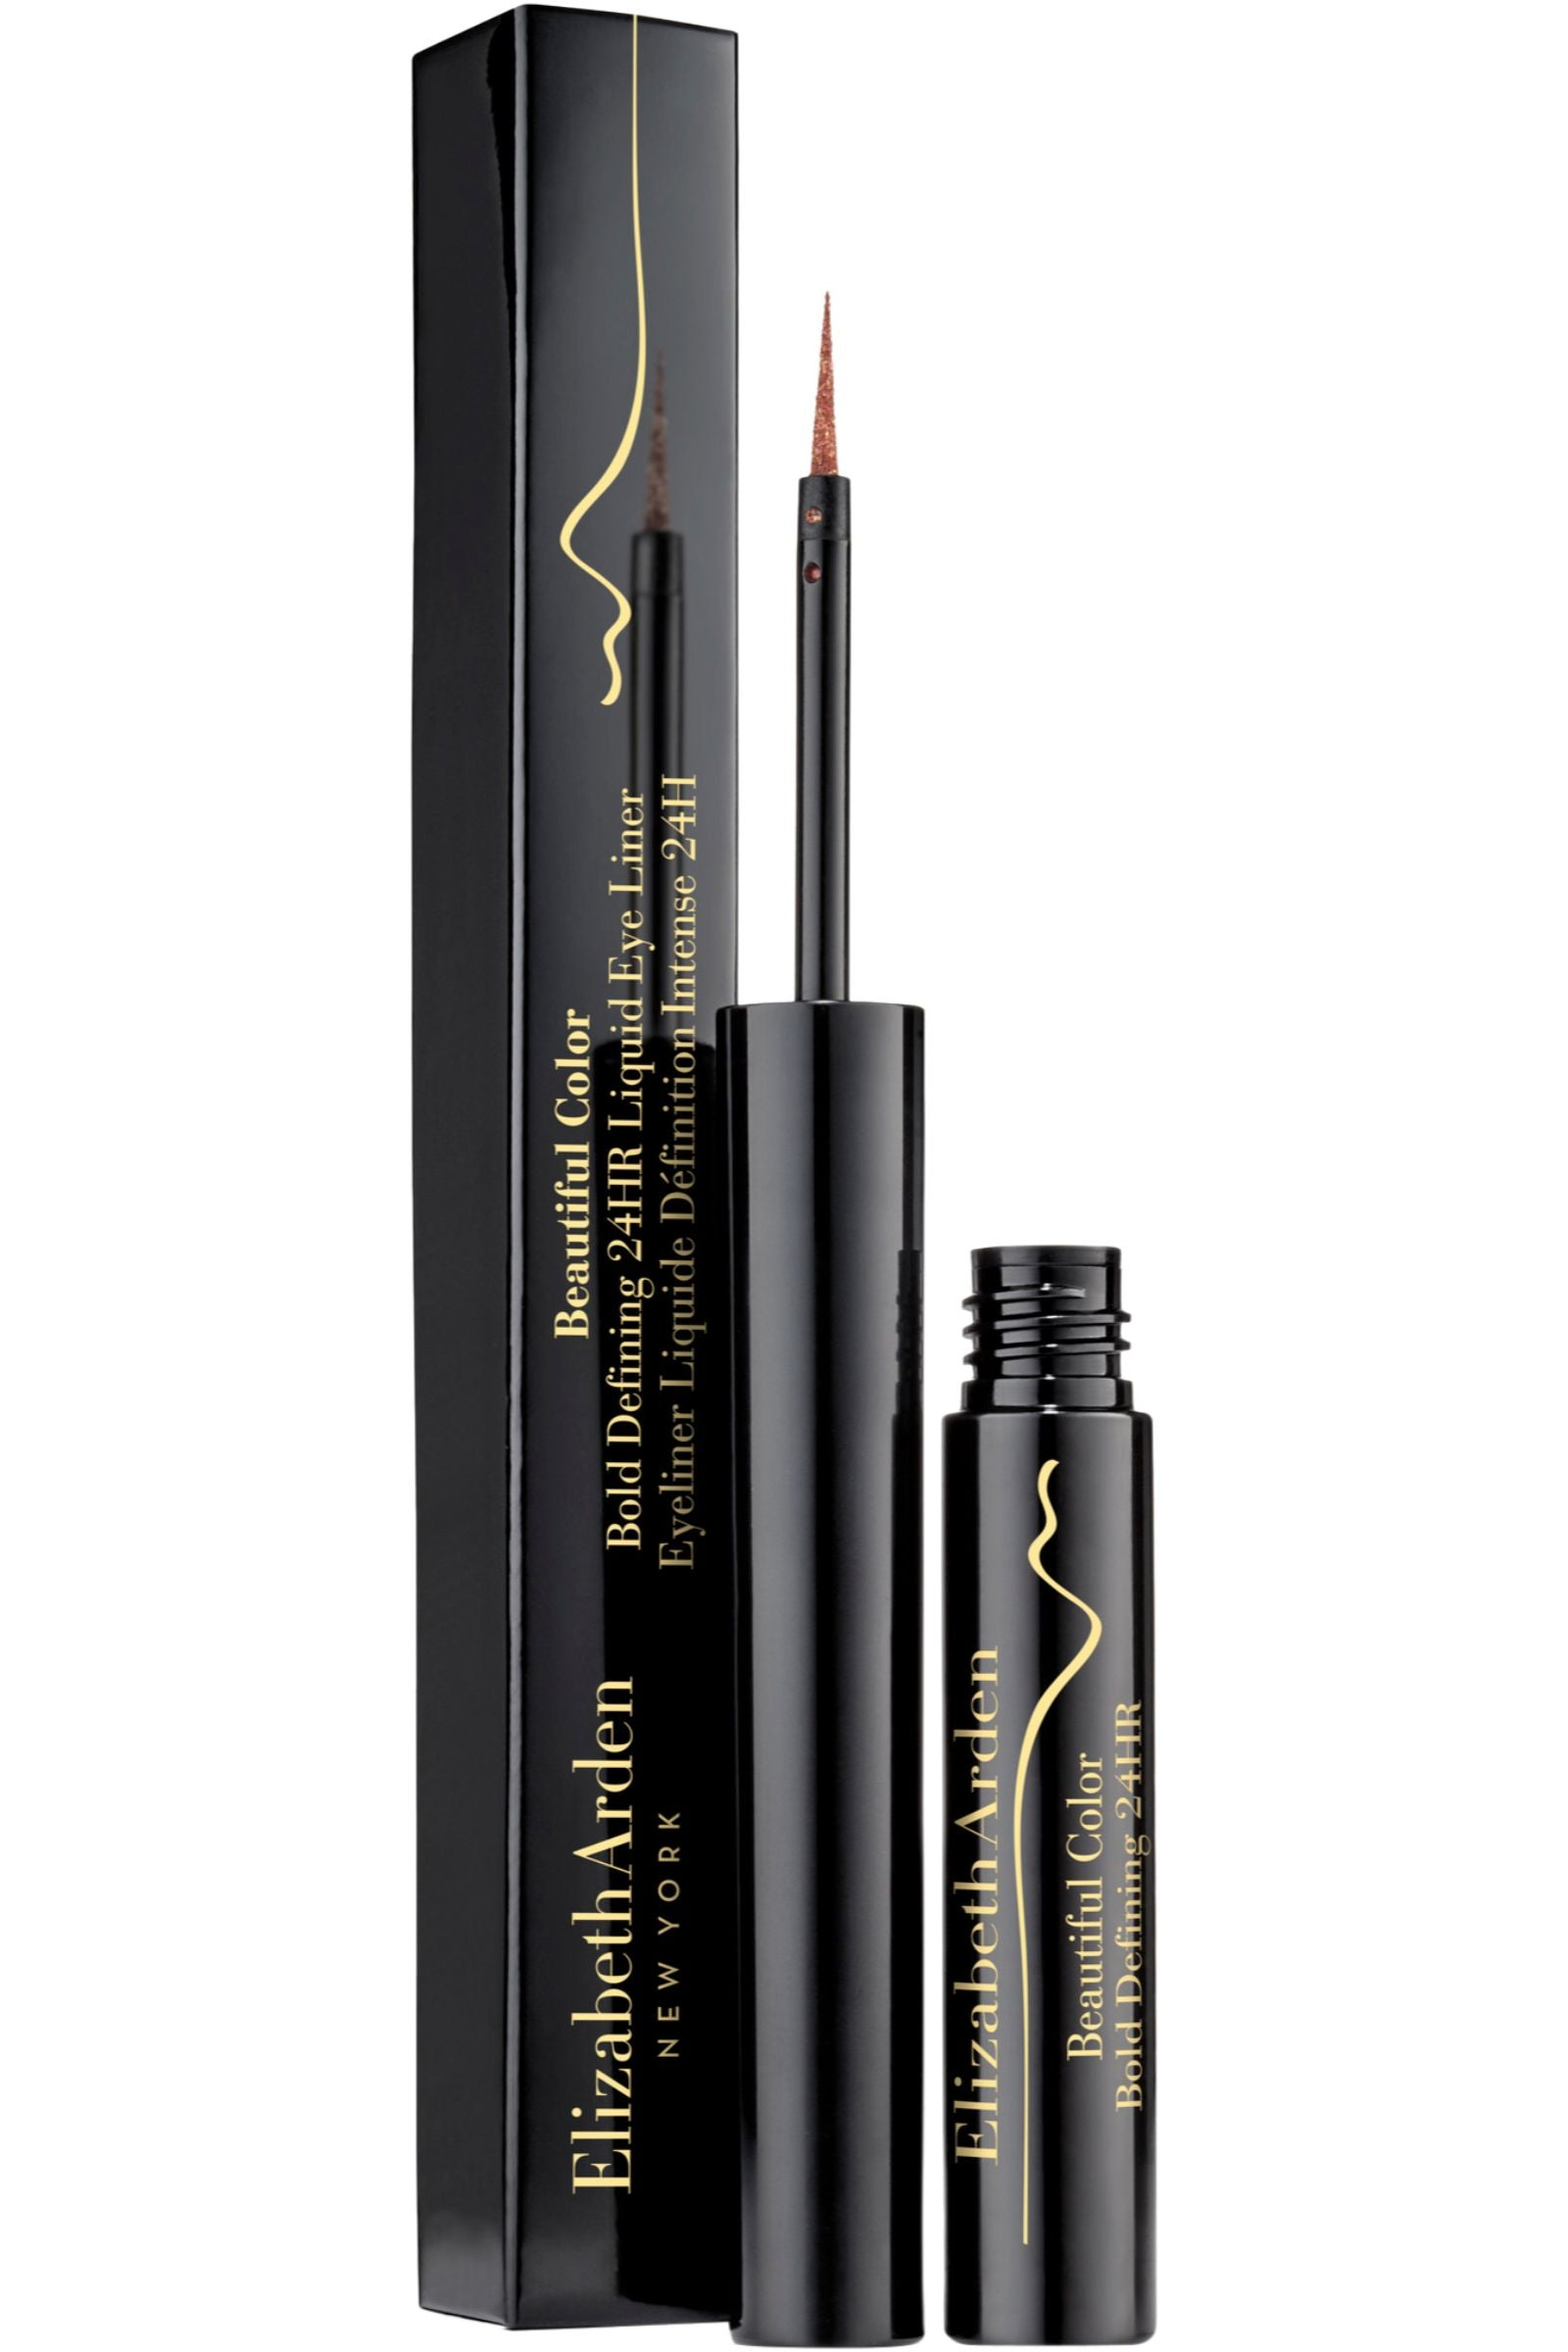 Elizabeth Arden Bold Defining 24 Hour Liquid EyeLiner 1.7mL in various shades